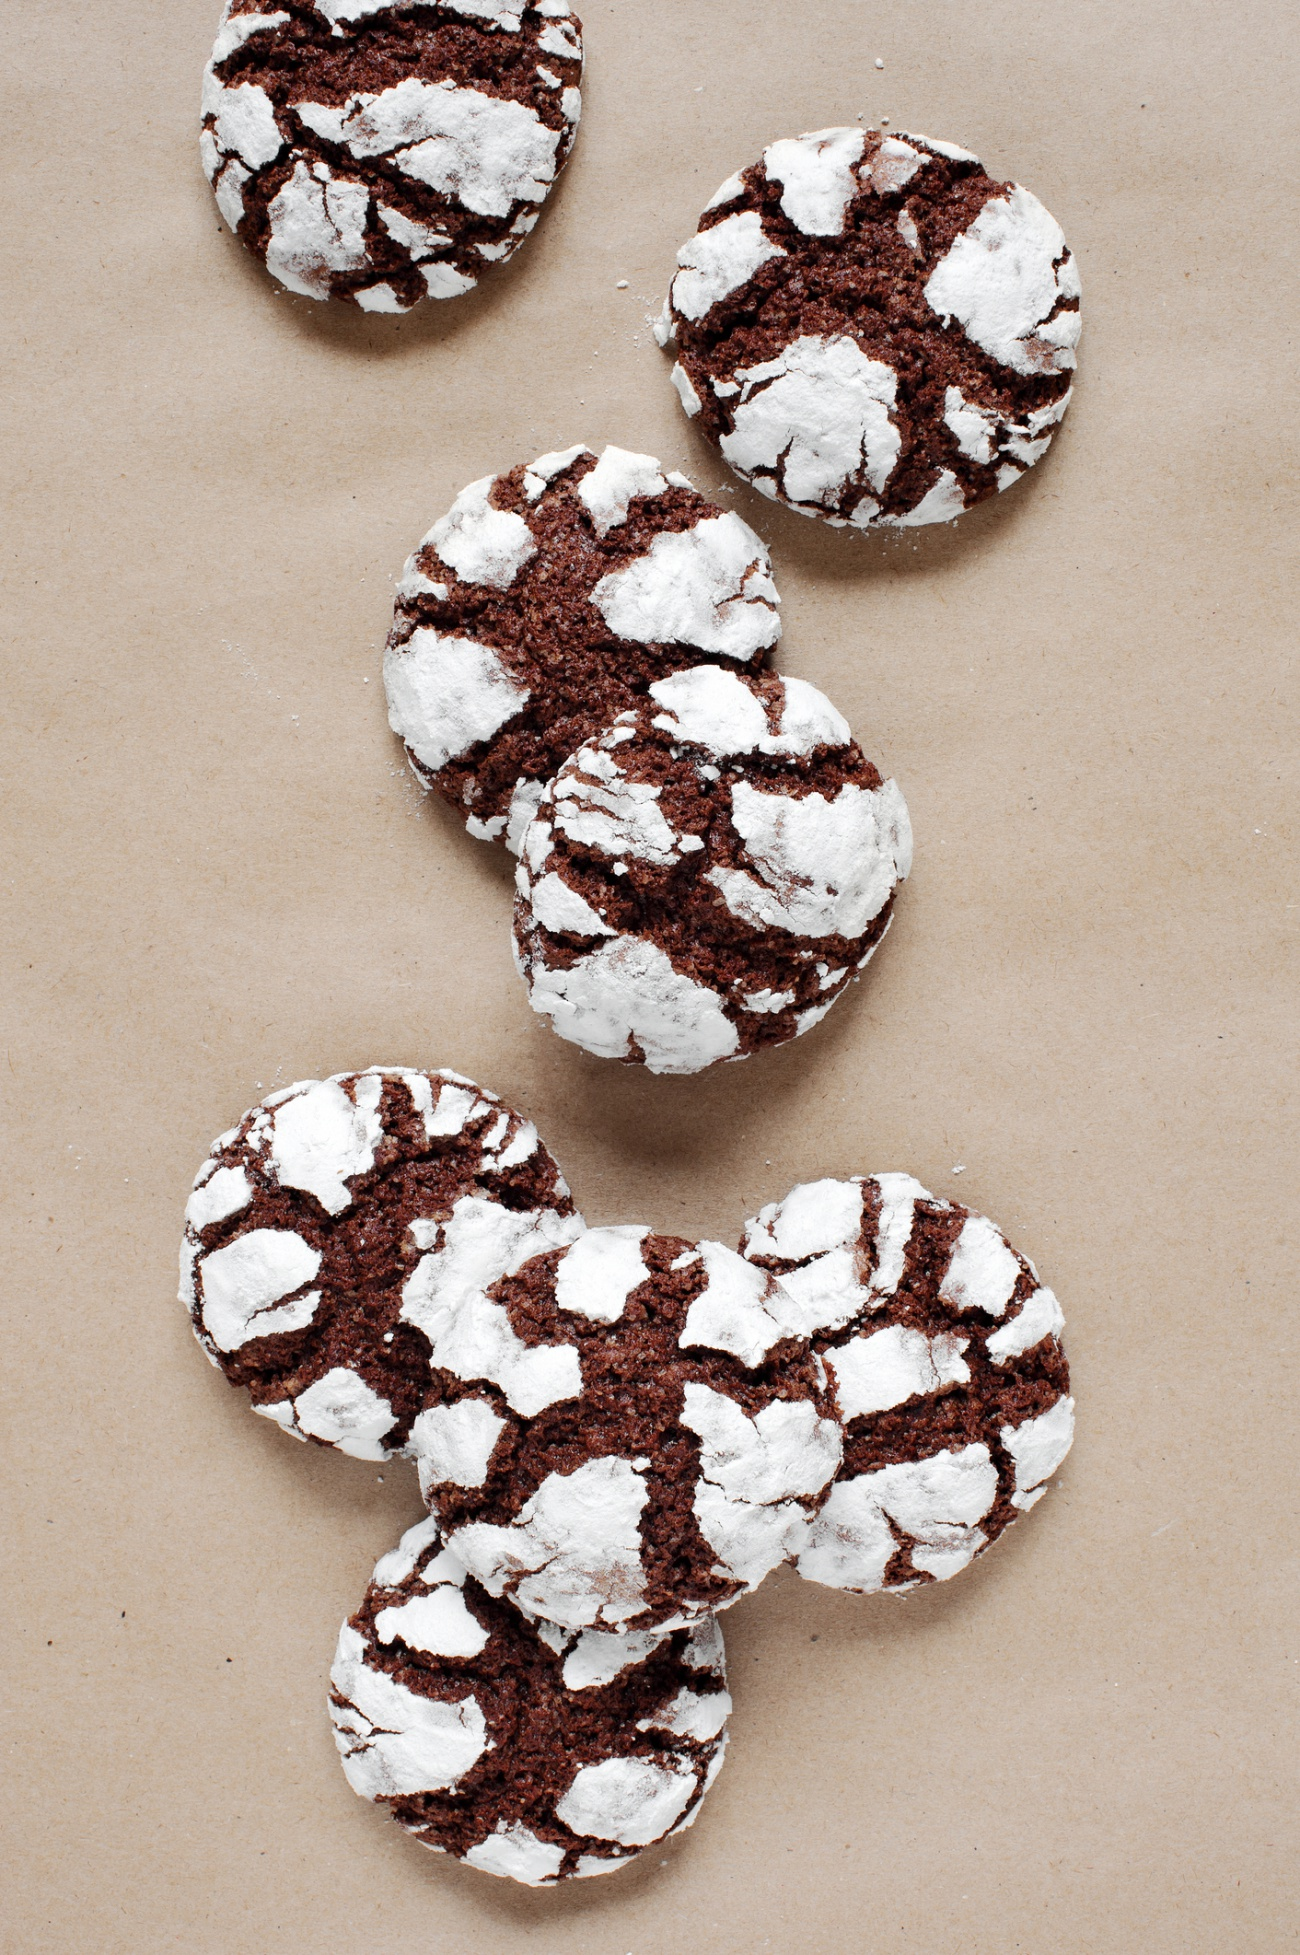 Chocolate crinkle cookies on the table